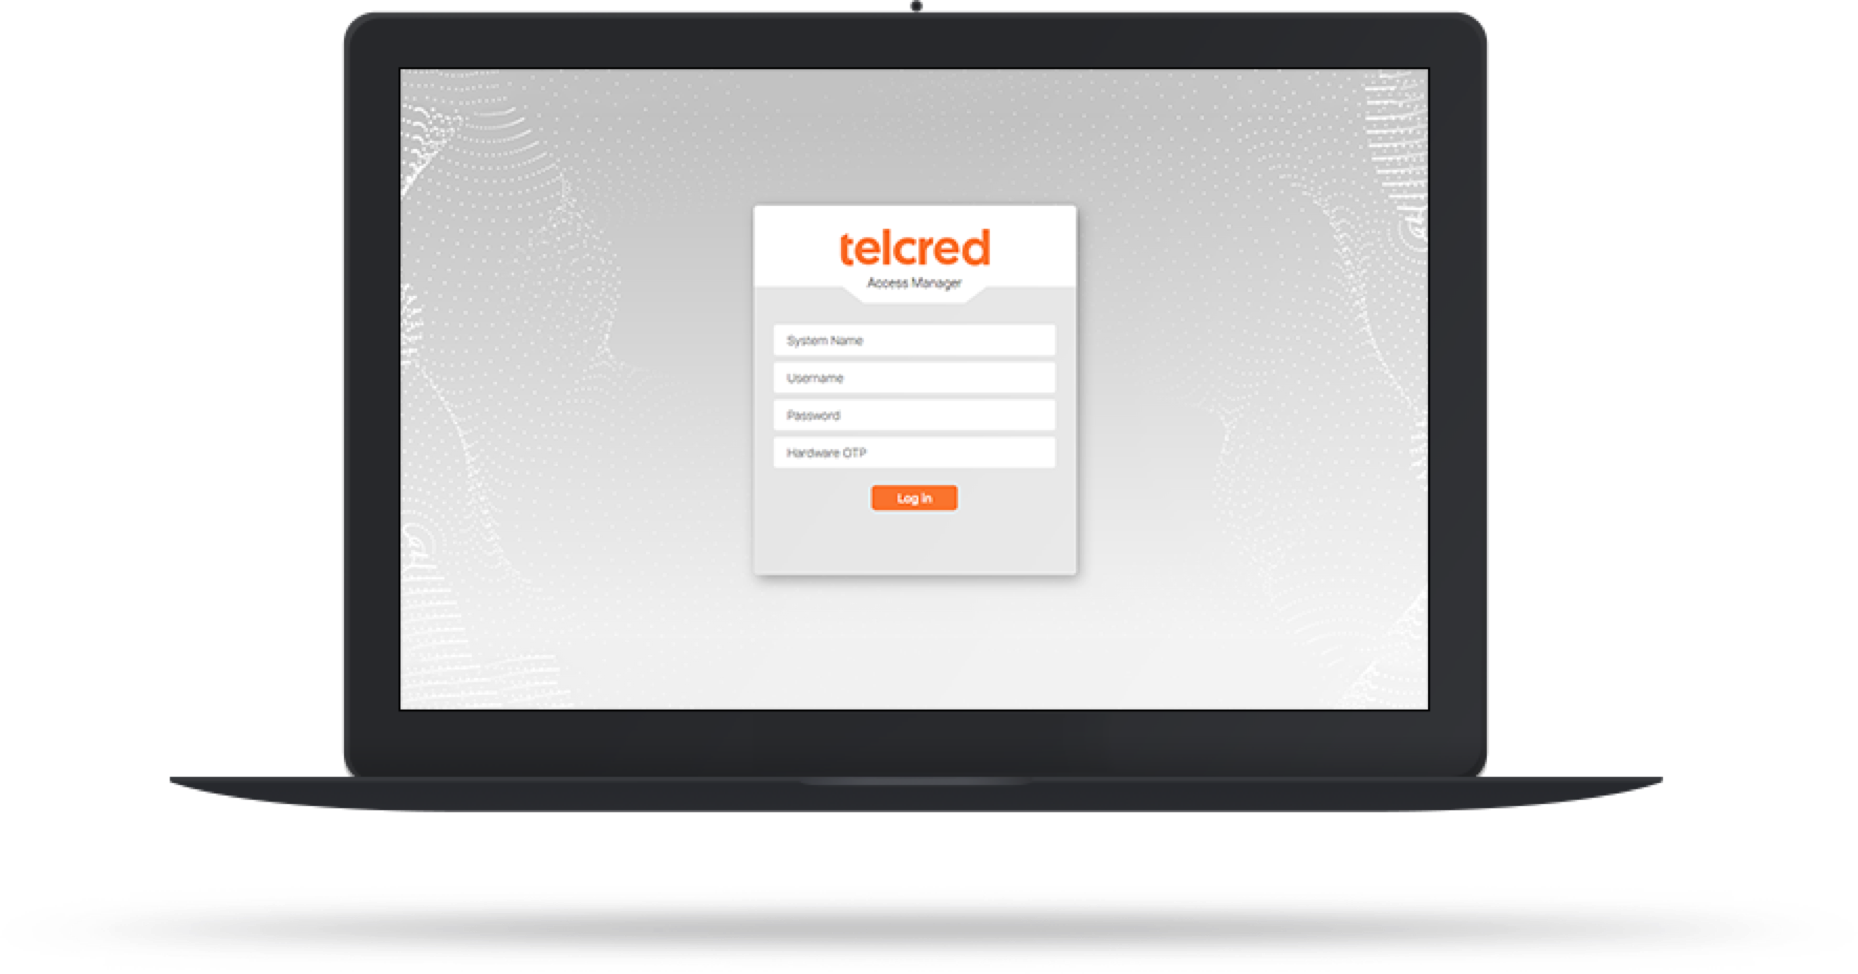 telcred